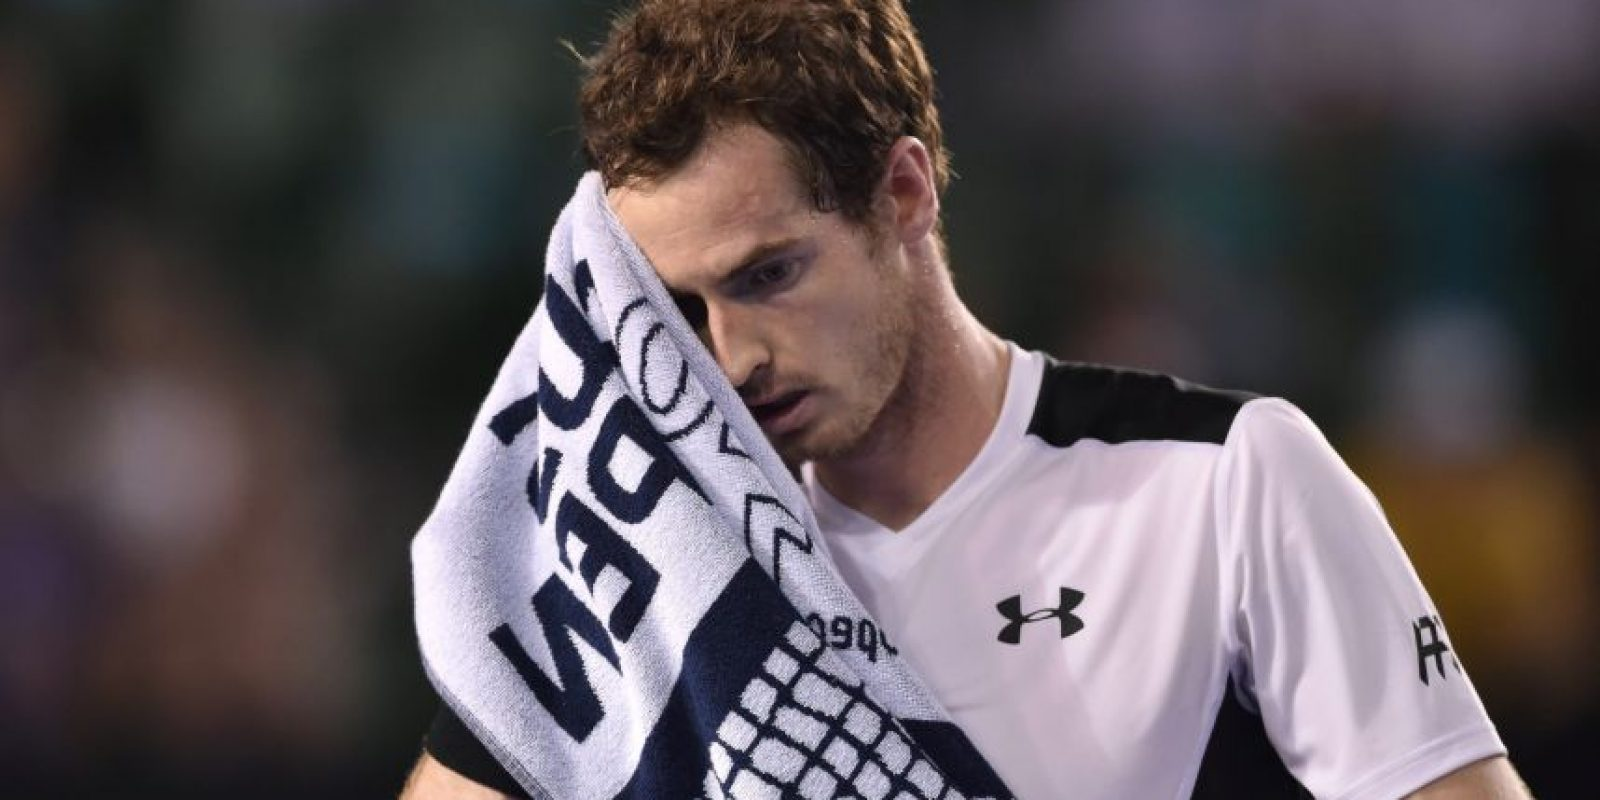 Un intenso partido vivió Andy Murray ante David Ferrer. Foto: AFP